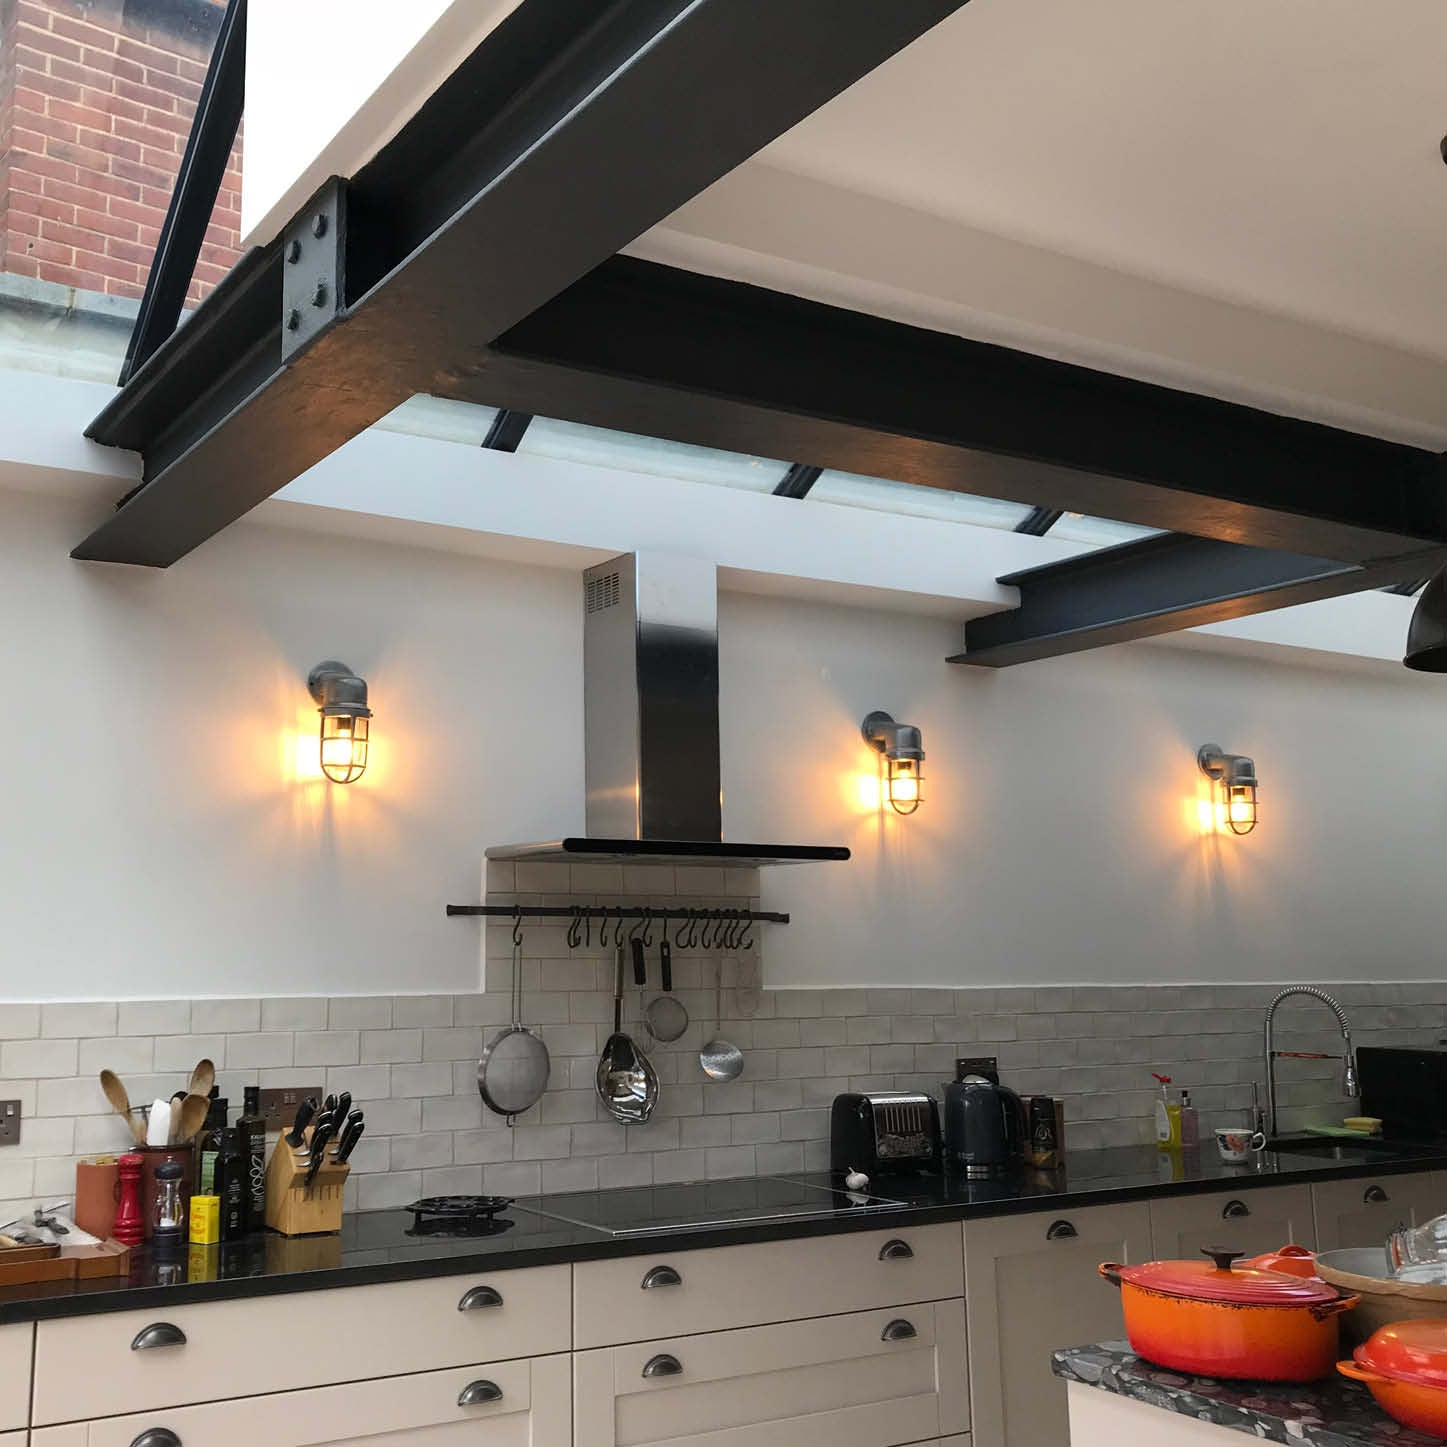 Kitchen with skylights and dark metal beams